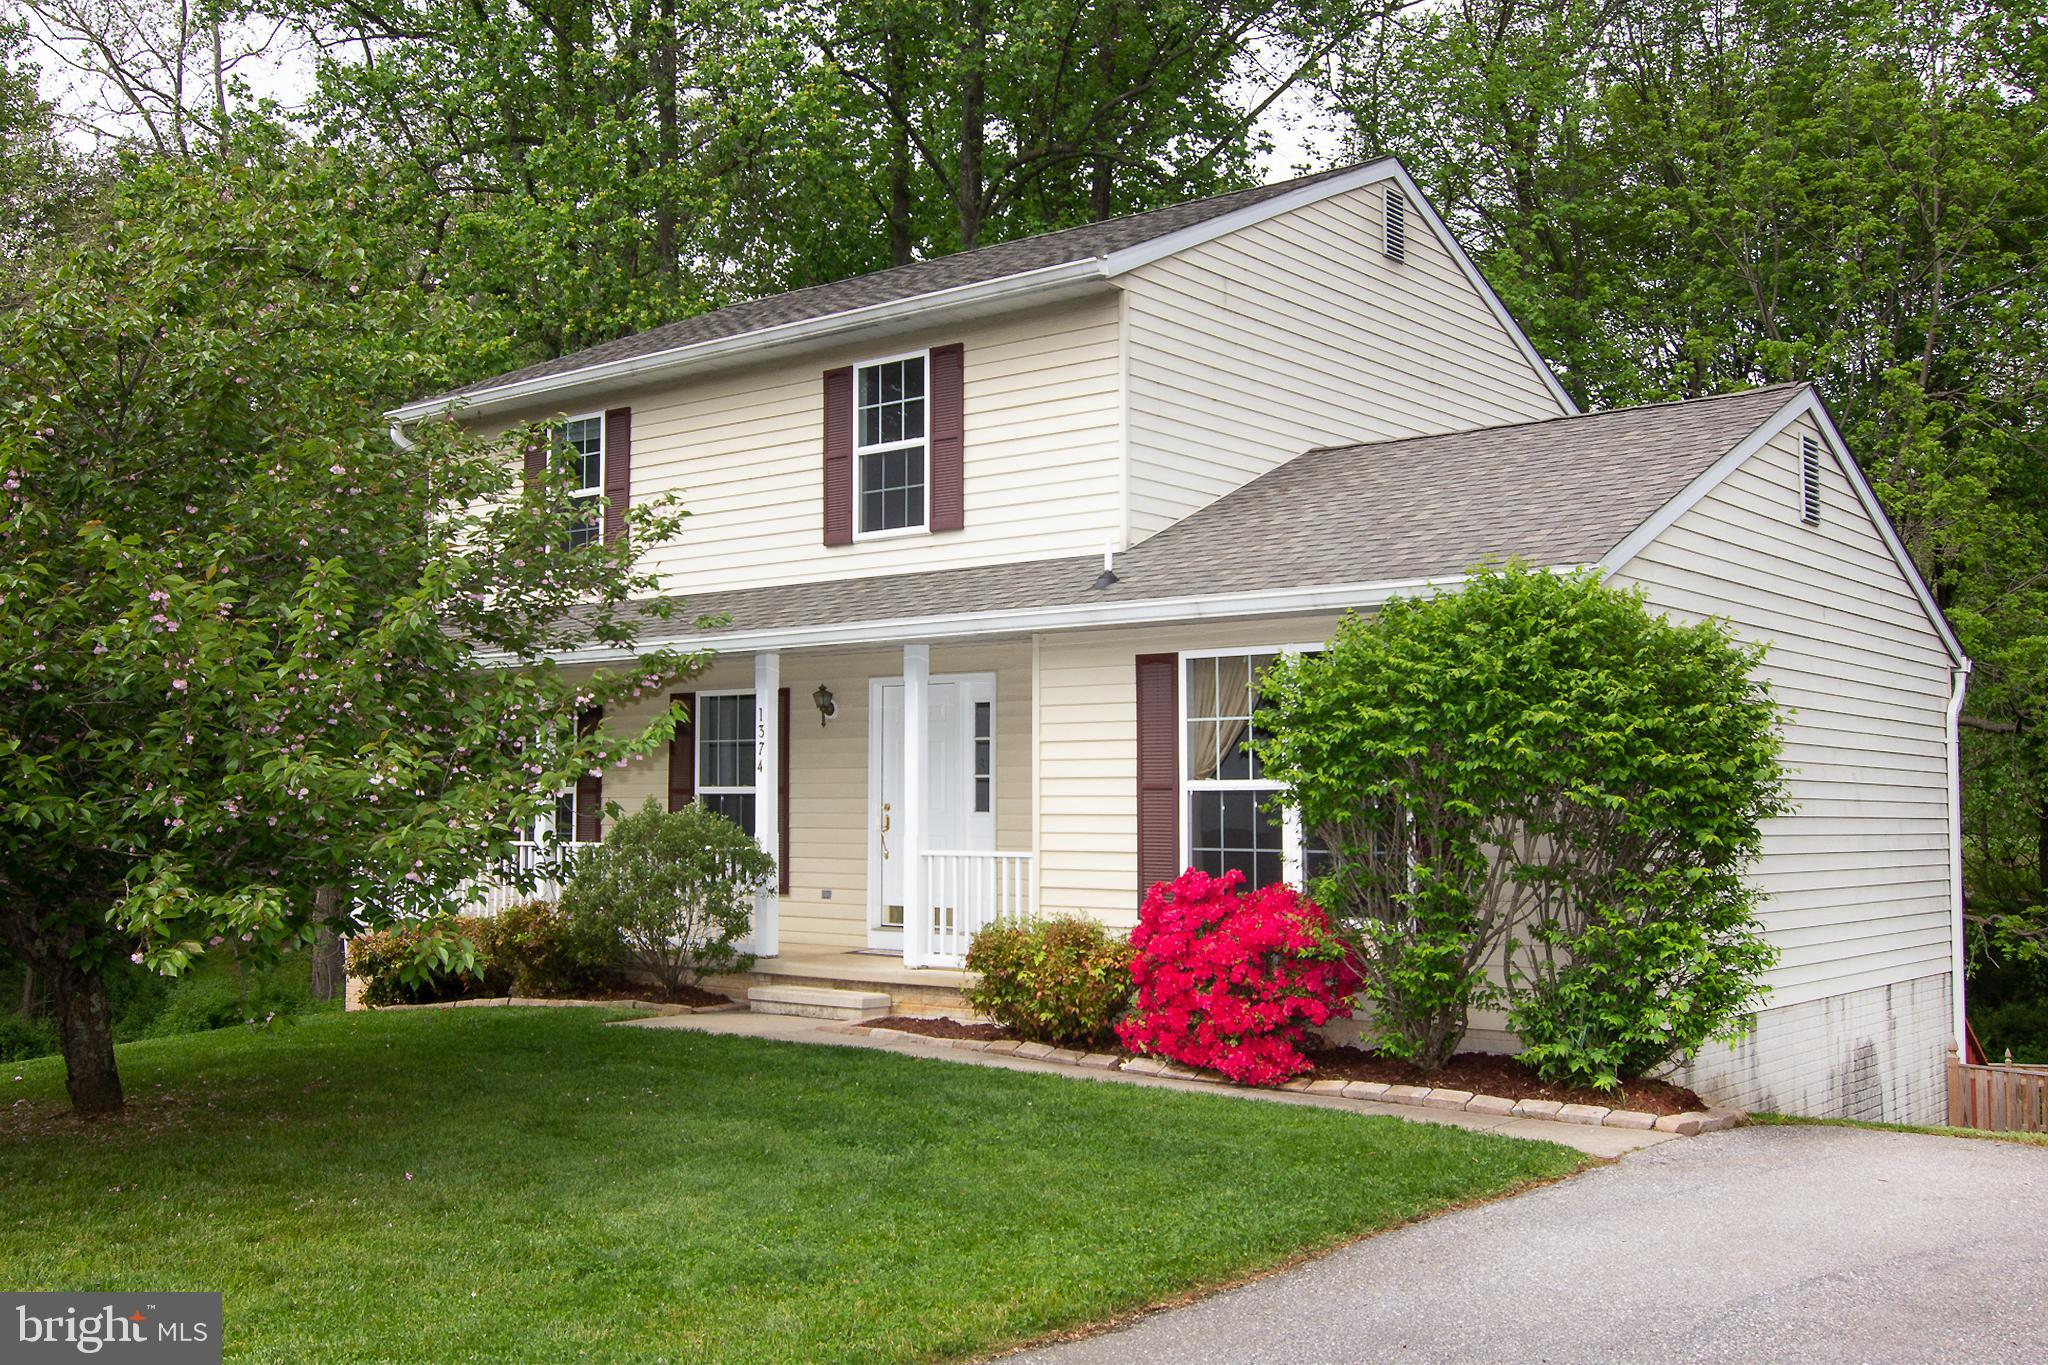 WELCOME TO THIS CHARMING COLONIAL * LIVING ROOM WITH HARDWOOD FLOORS AND SELLERS HAVE ADDED A PICTUR